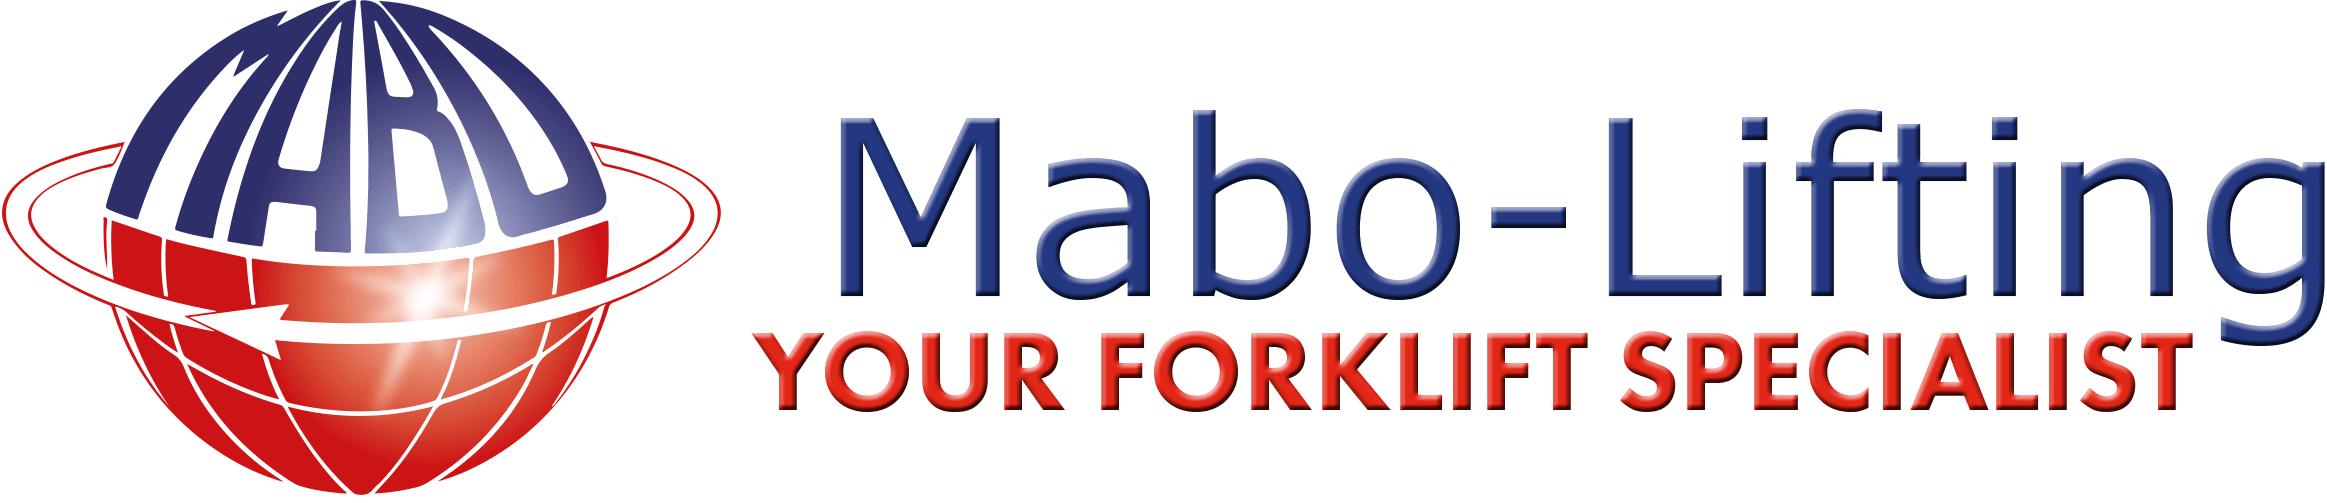 Mabo-Lifting - Just another WordPress site